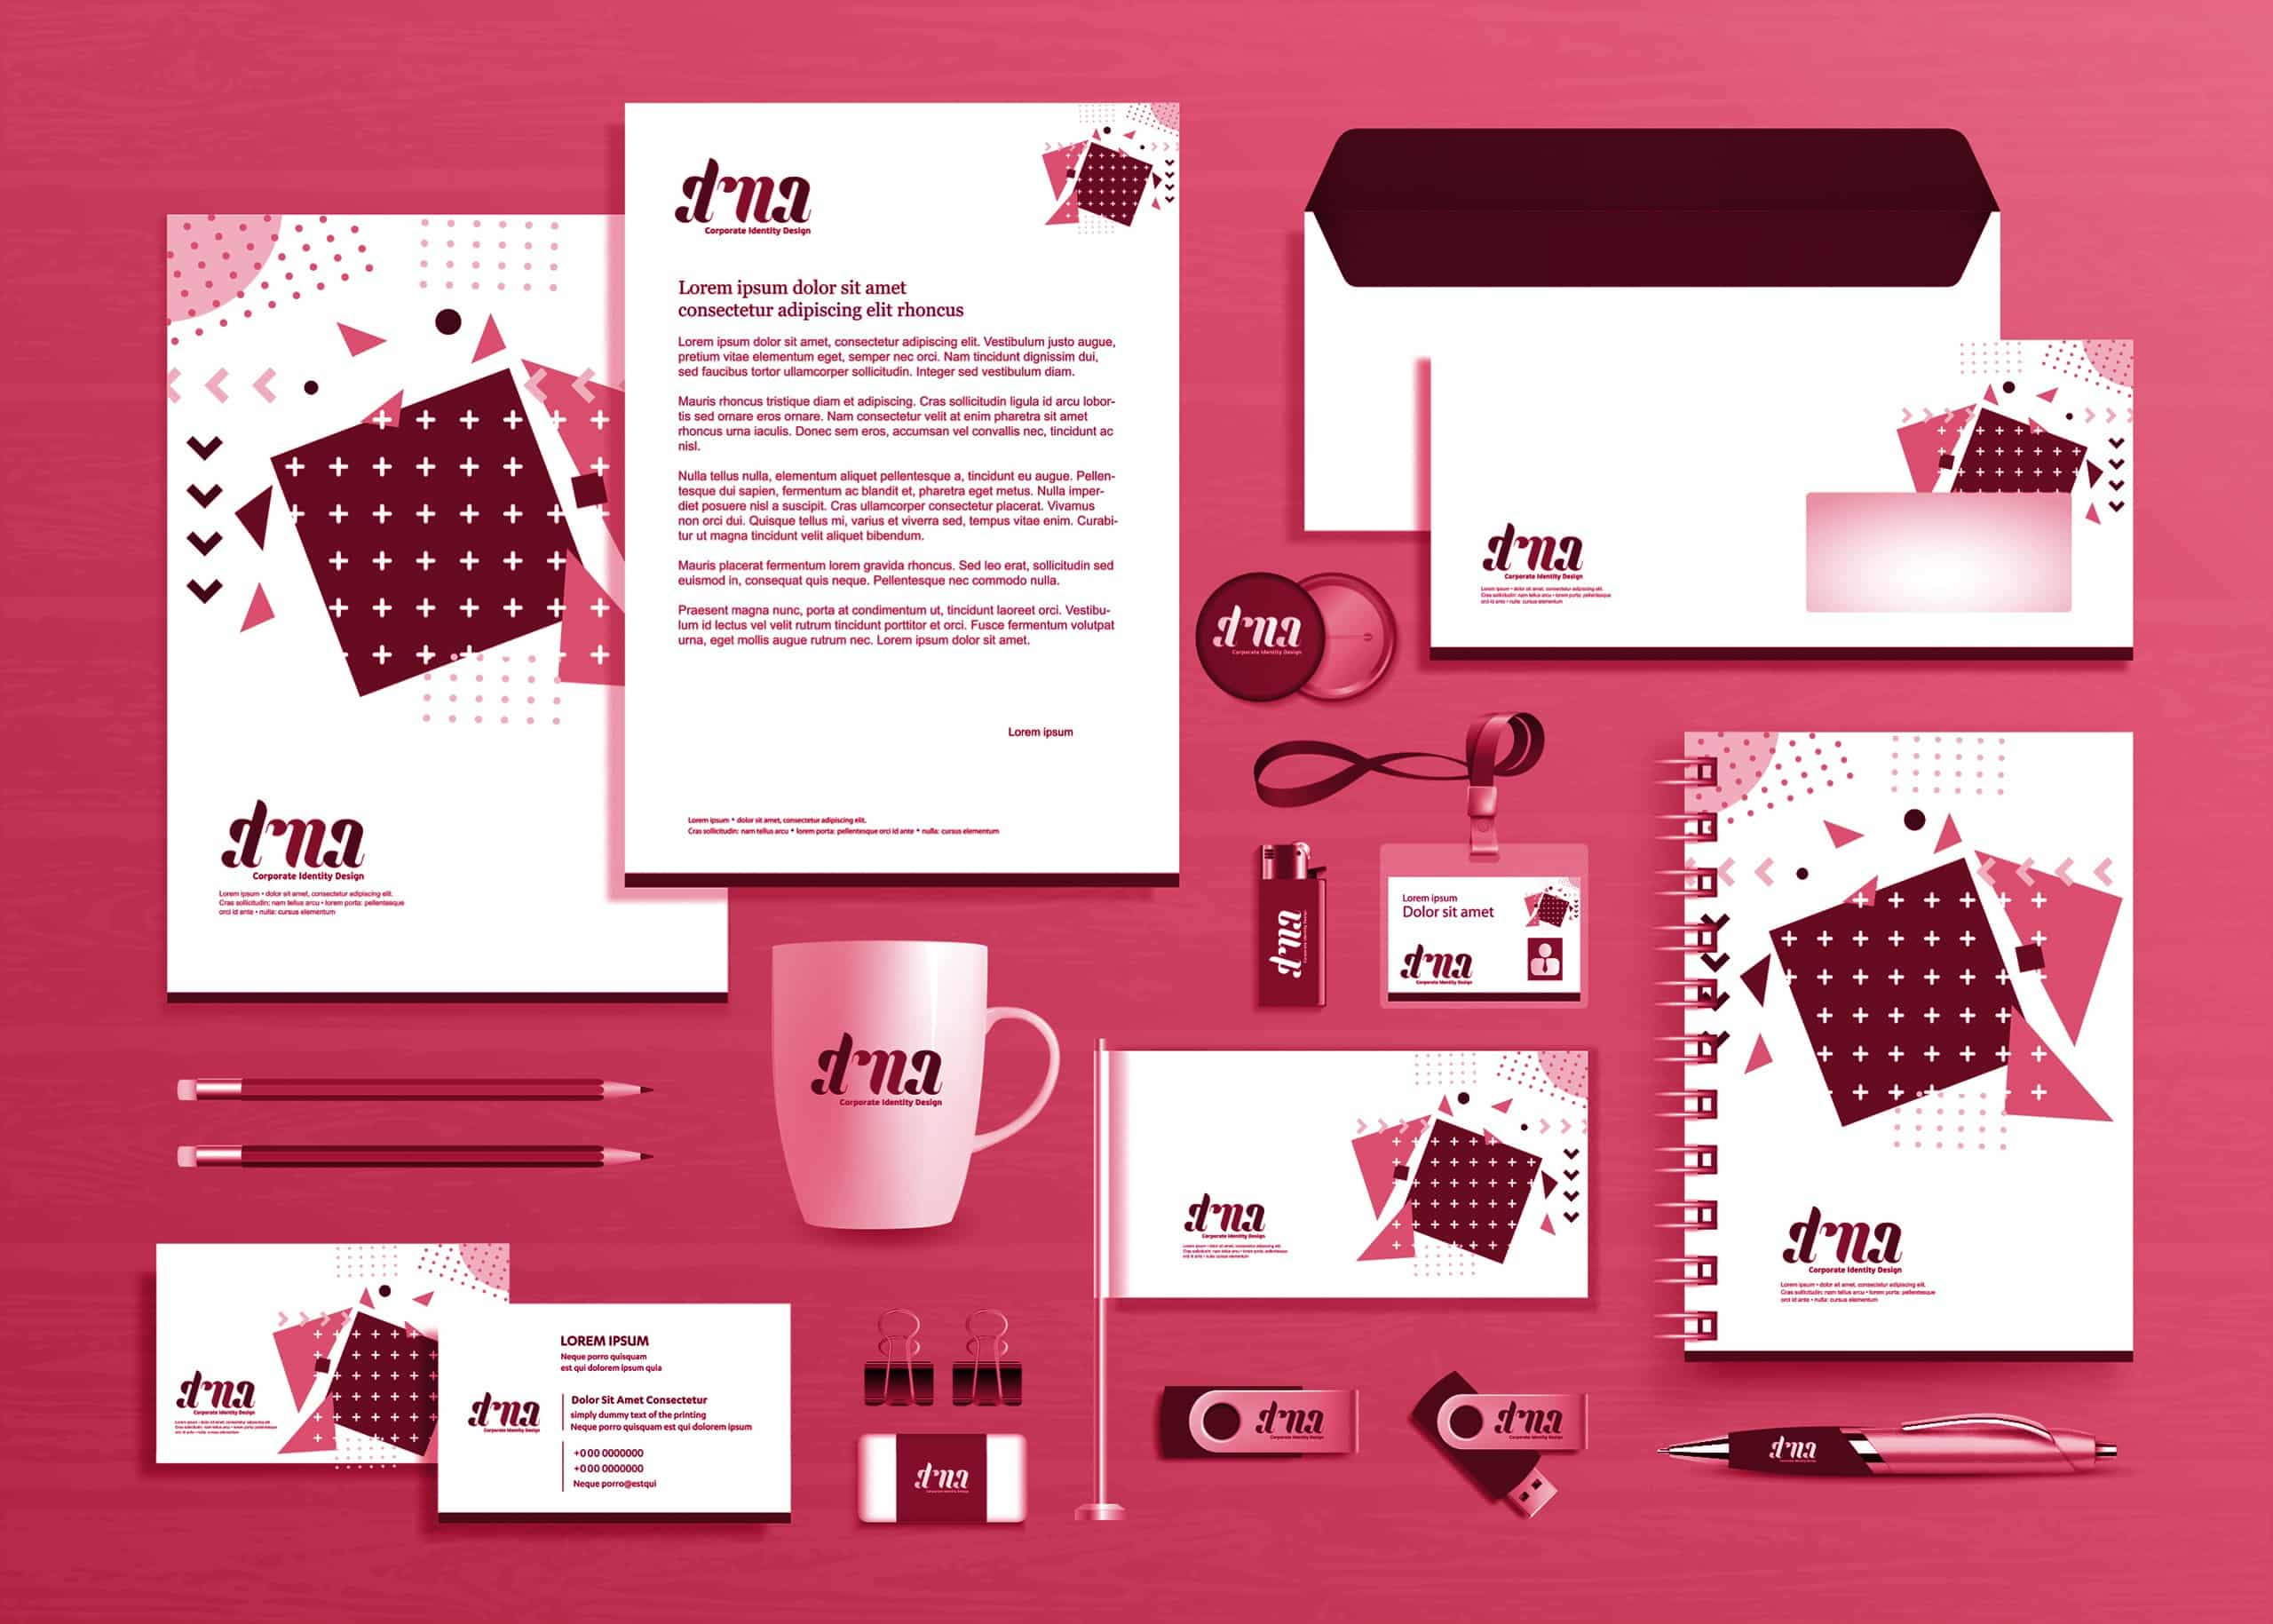 Various brand assets like business cards and letterhead are spread on a surface